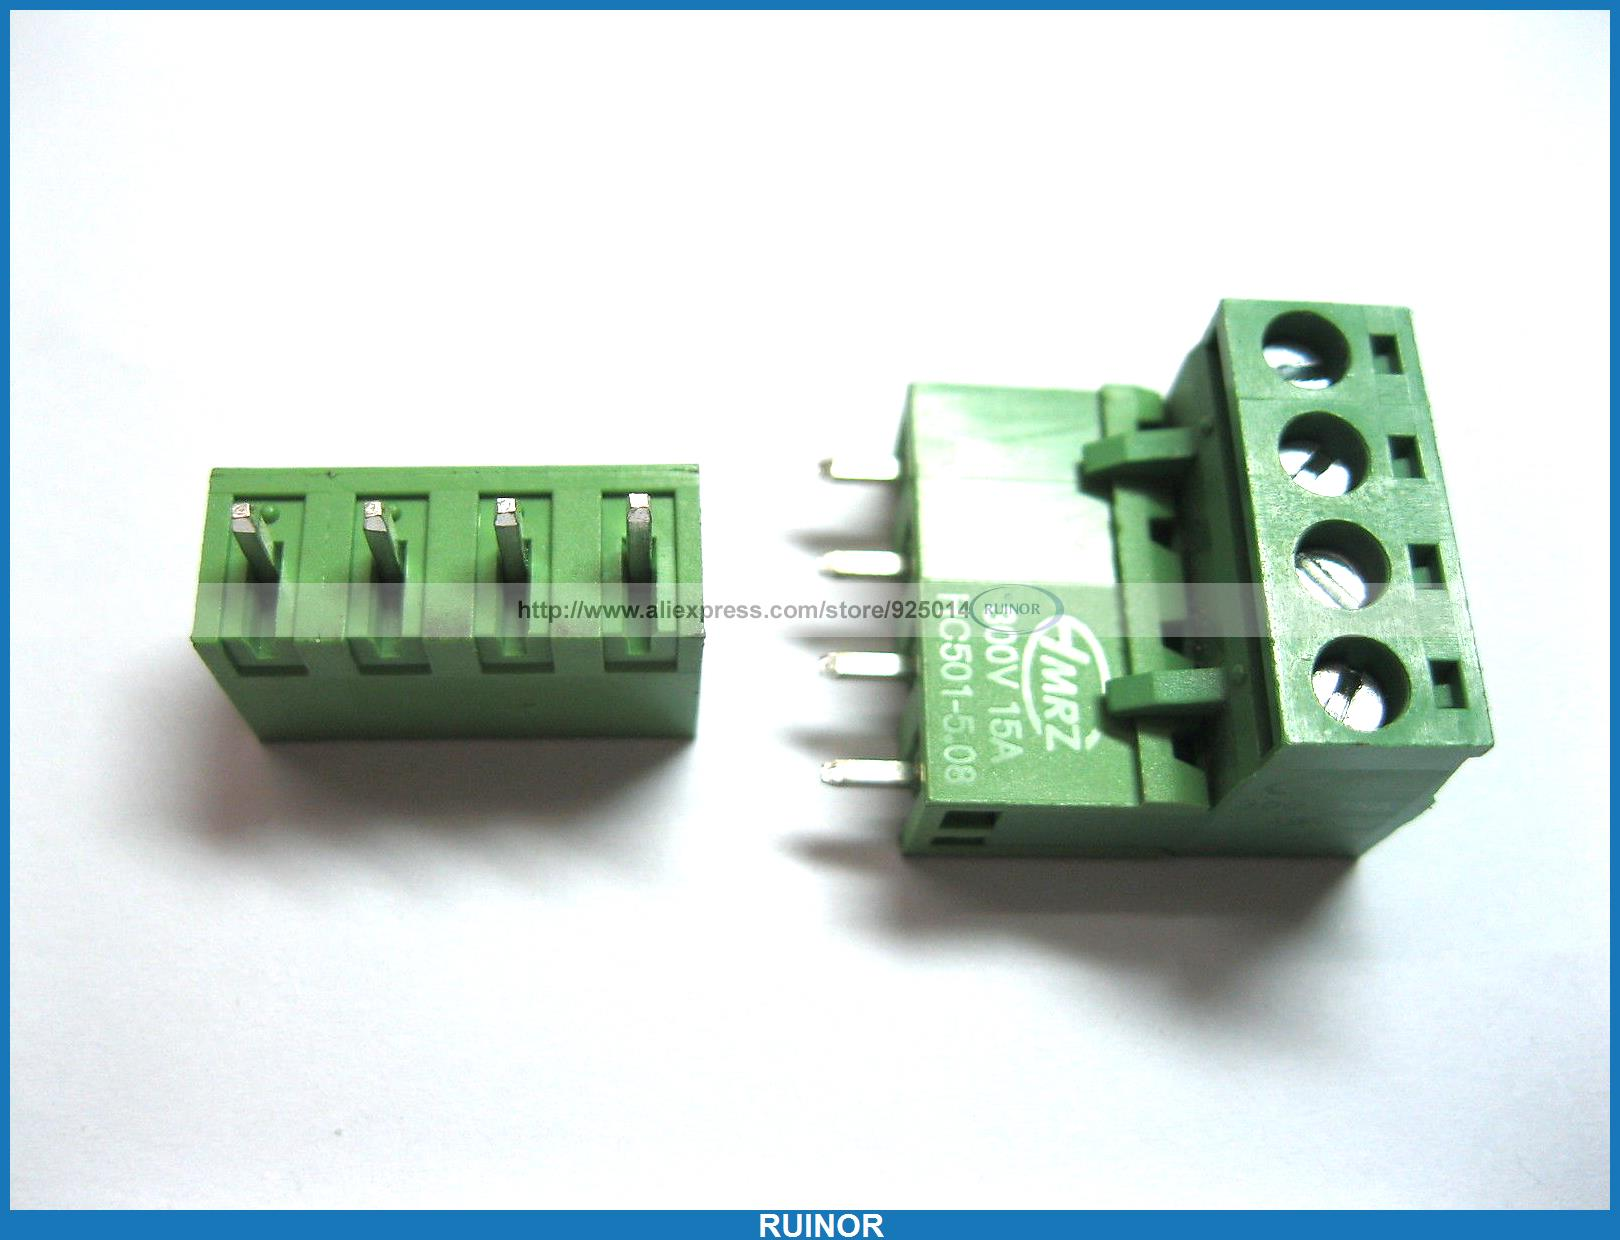 50 Pcs 5 08mm Straight 4 Pin Screw Terminal Block Connector Pluggable Type Green планшет digma optima prime 2 3g 7 8gb черный wi fi 3g bluetooth android ts7001pg ts7067pg